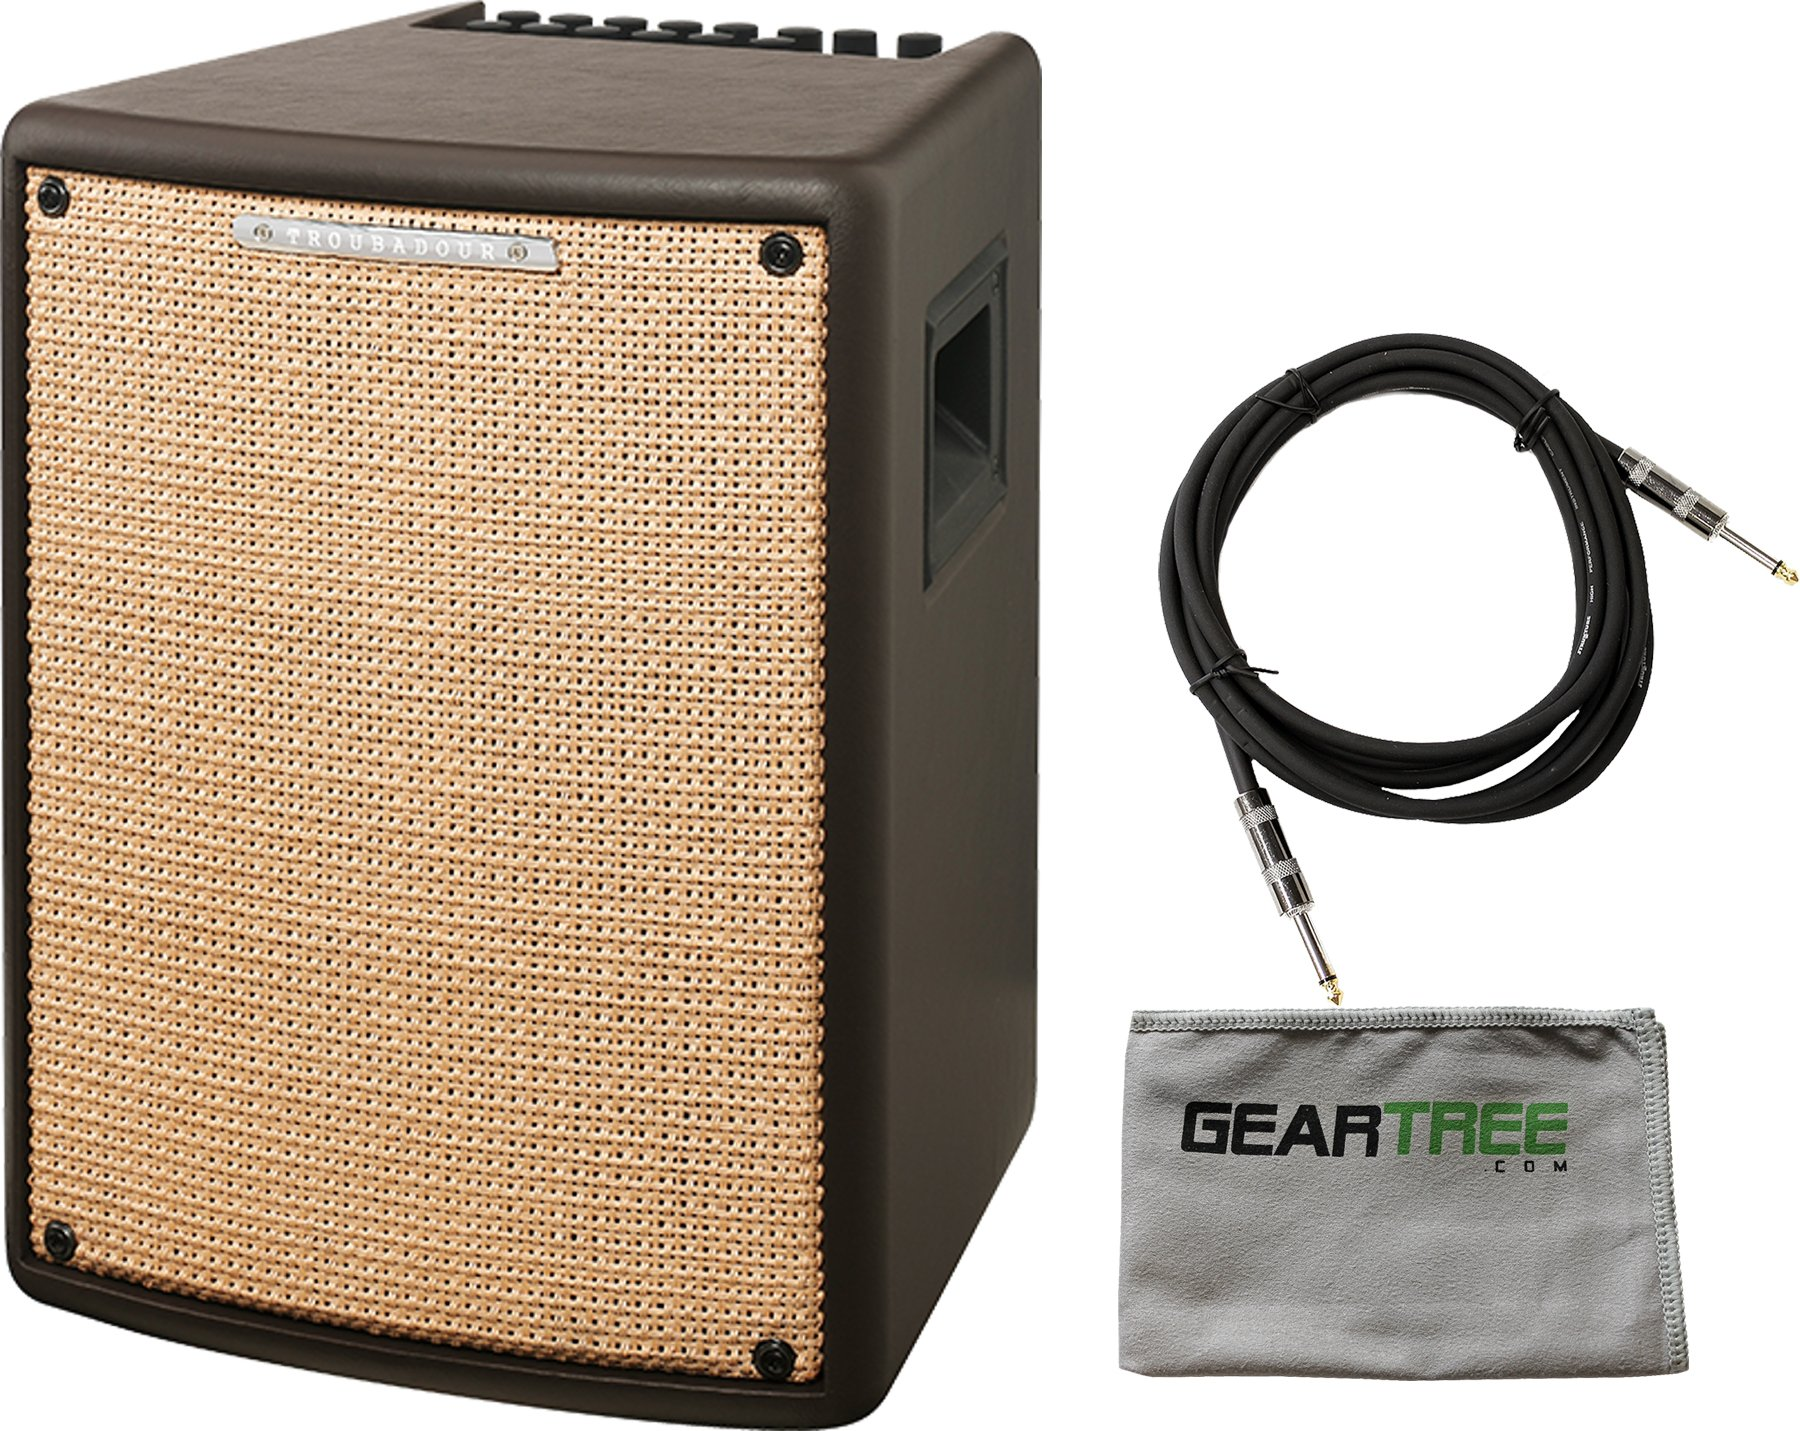 Ibanez T80II Troubadour II Acoustic Guitar Combo Amplifier Brown - 80 Watt w/ Cable and Geartree Cloth by I.B.A.N.E.Z.